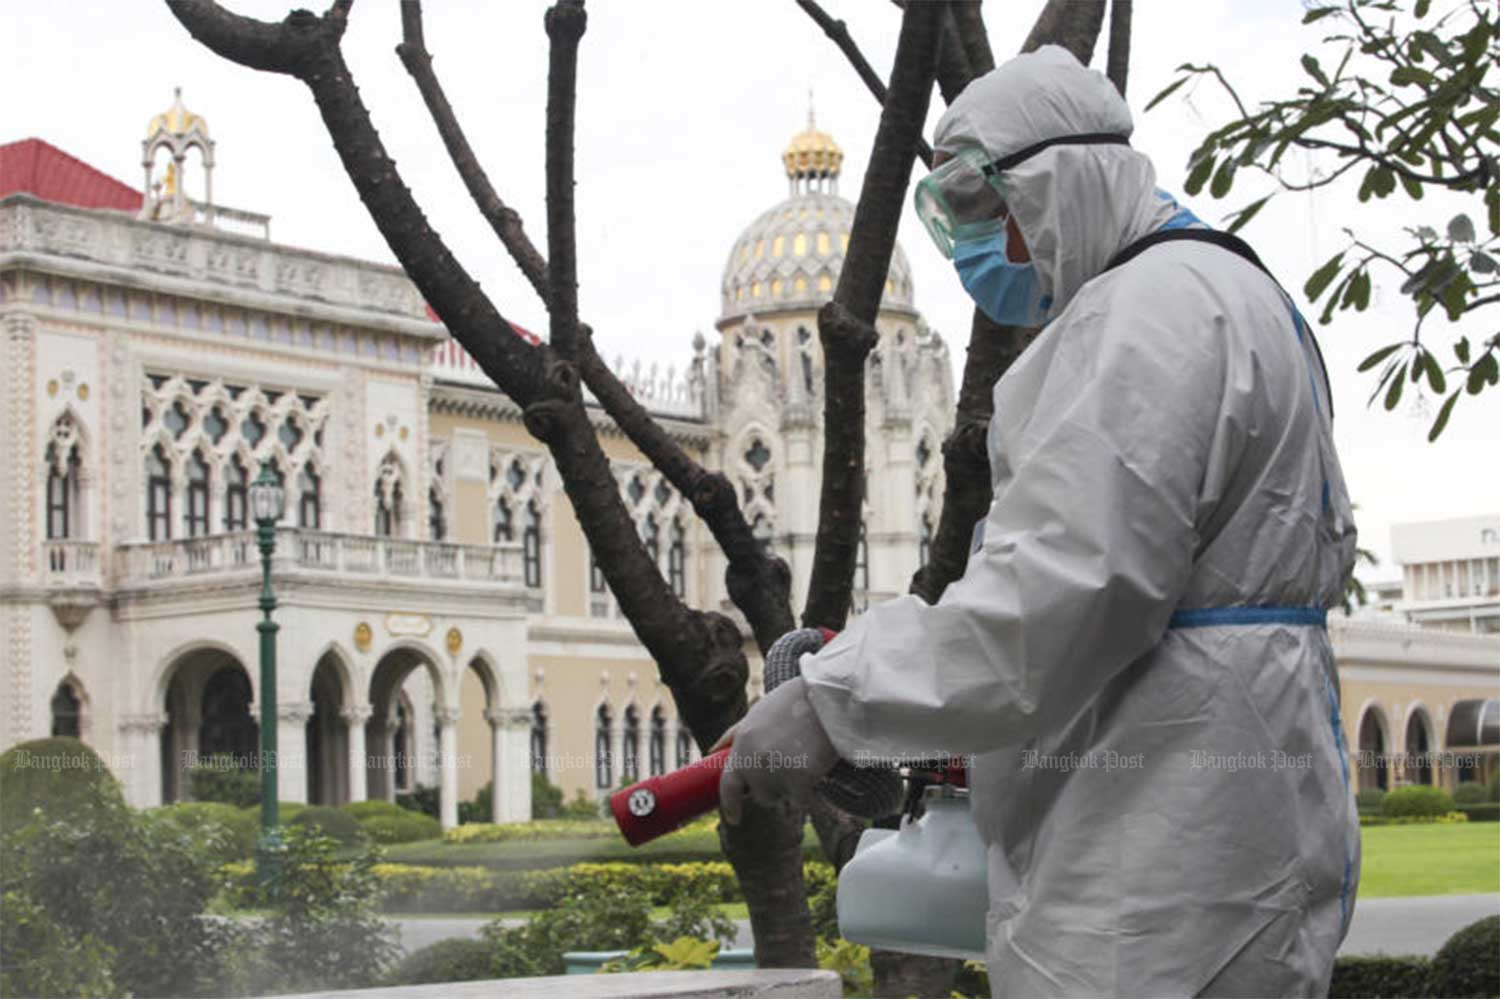 A worker prepares to spray the compound of Government House on Saturday to prevent the spread of Covid-19. Six people in the complex tested positive in a rapid test this week, but a follow-up swab test showed it was a false positive. Nevertheless, authorities want to ensure the area is safe. (Photo by Apichart Jinakul)